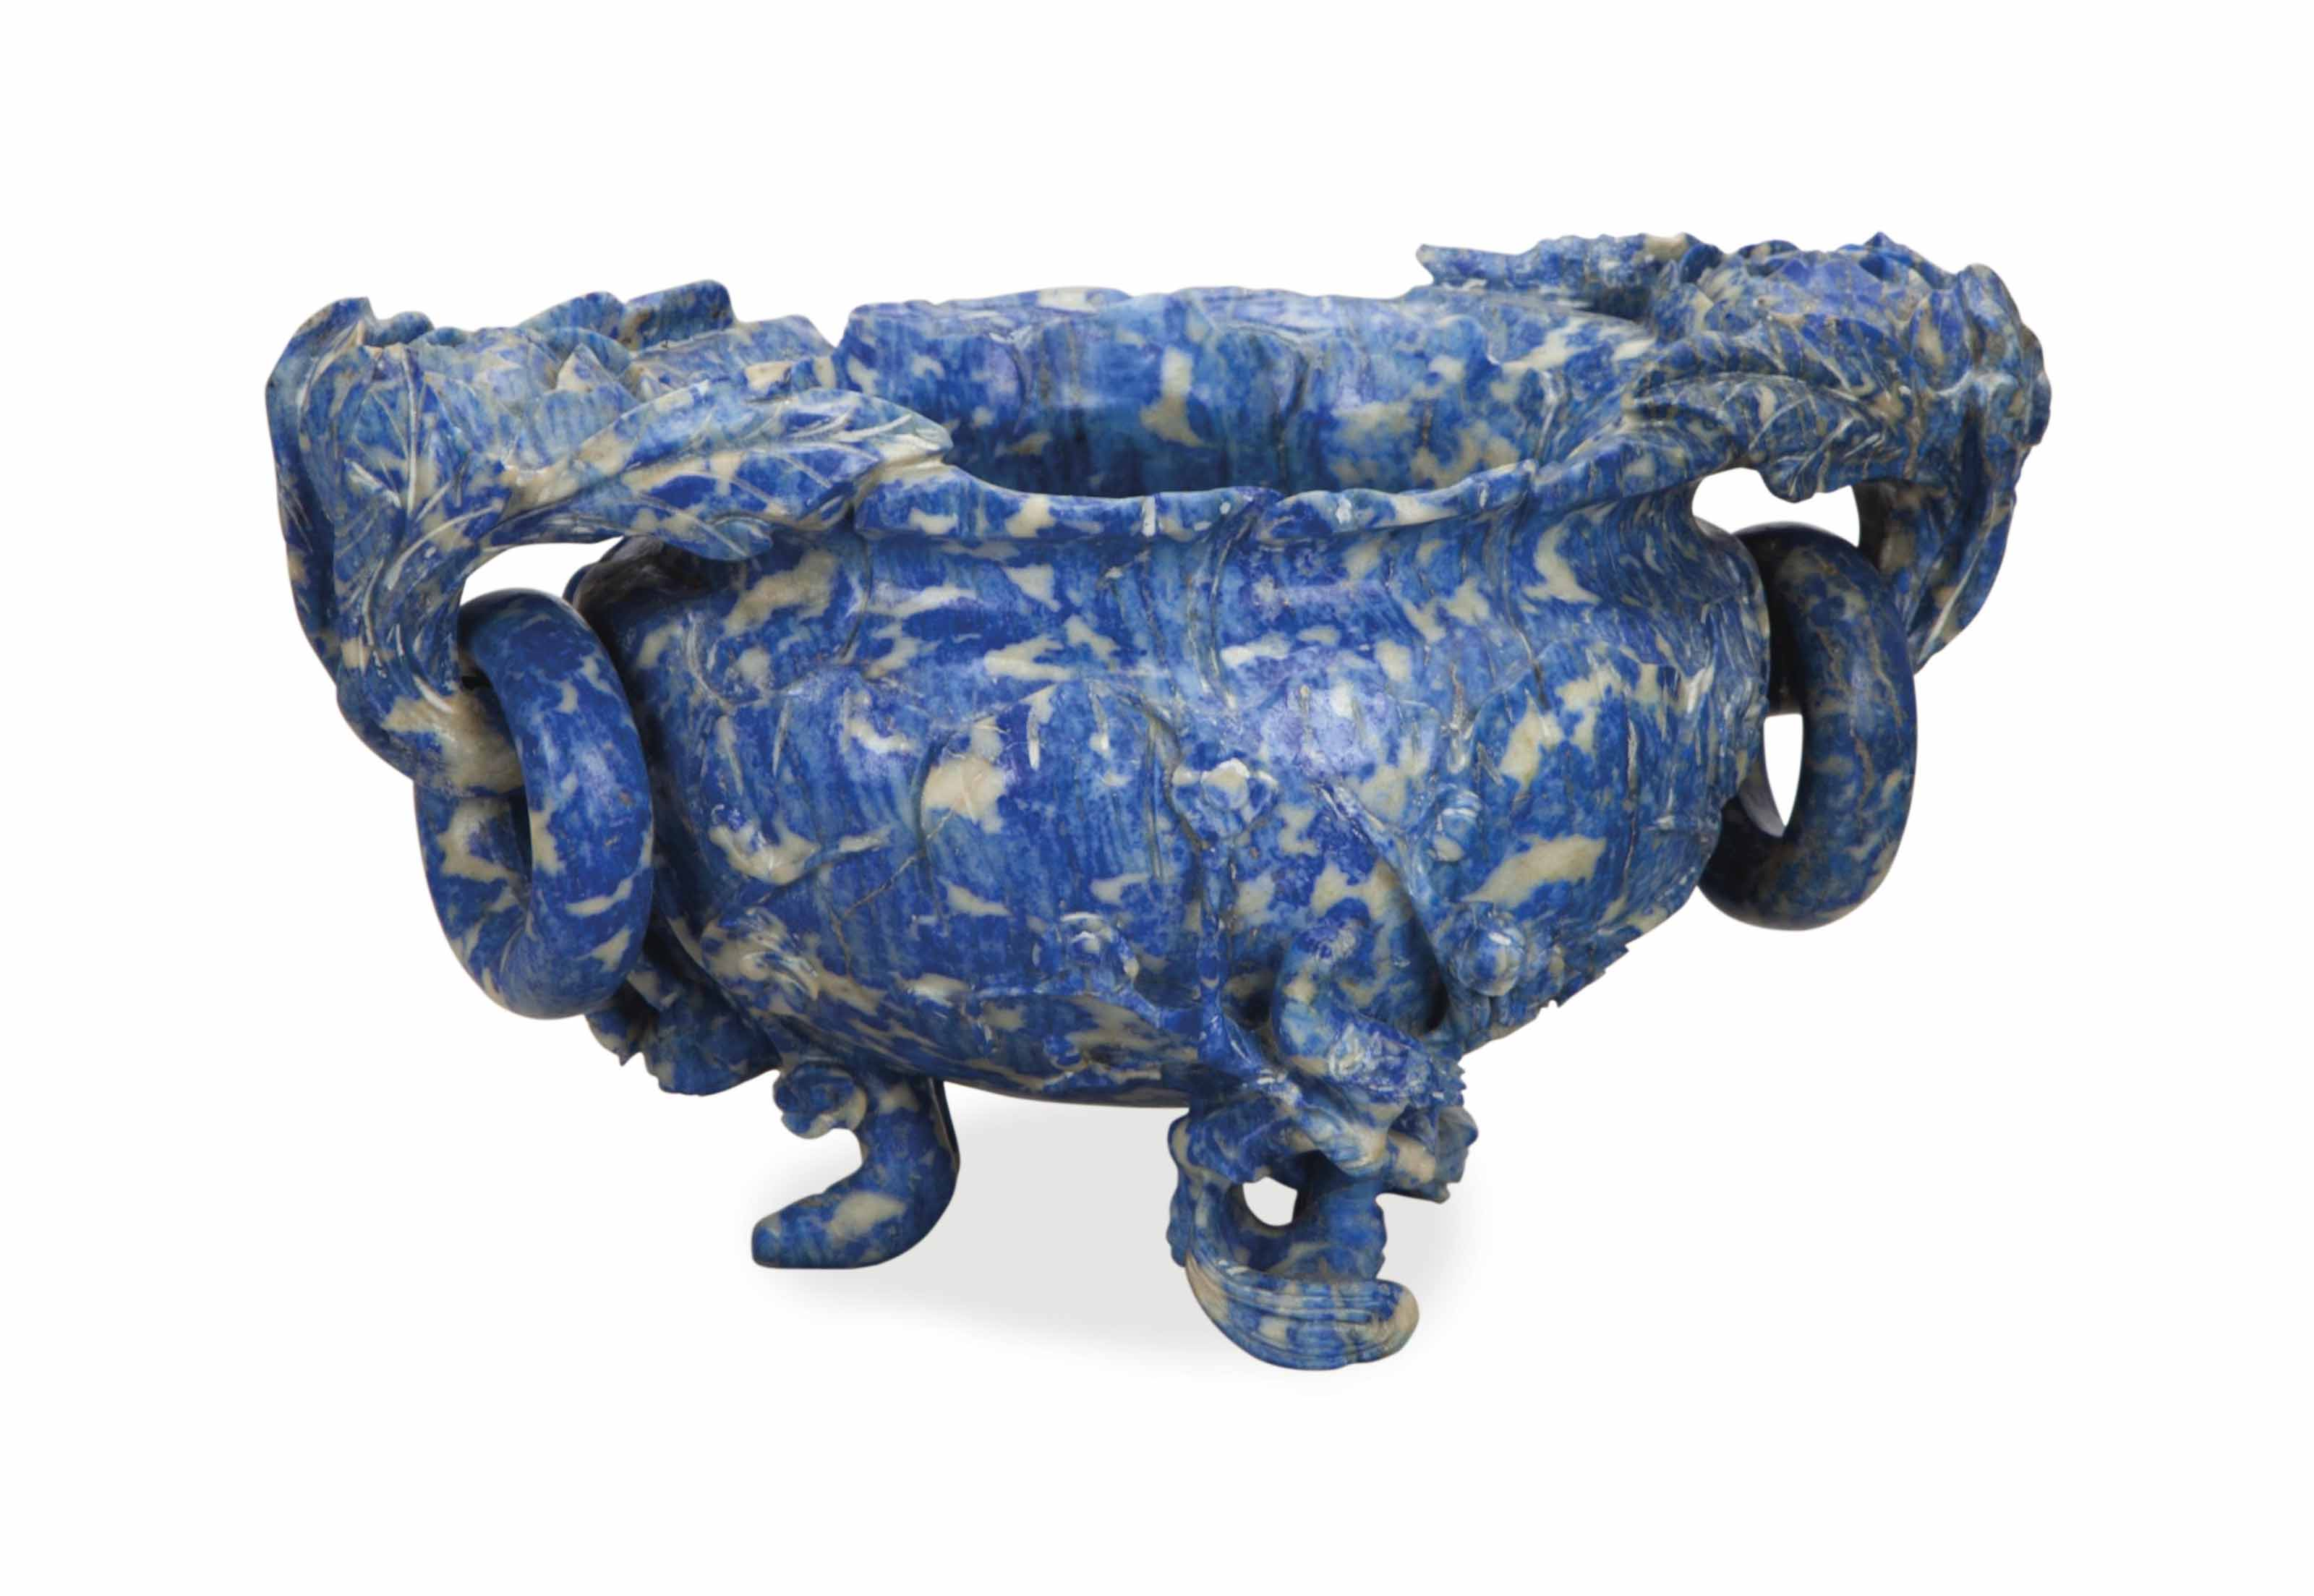 A CHINESE CARVED LAPIS LAZULI